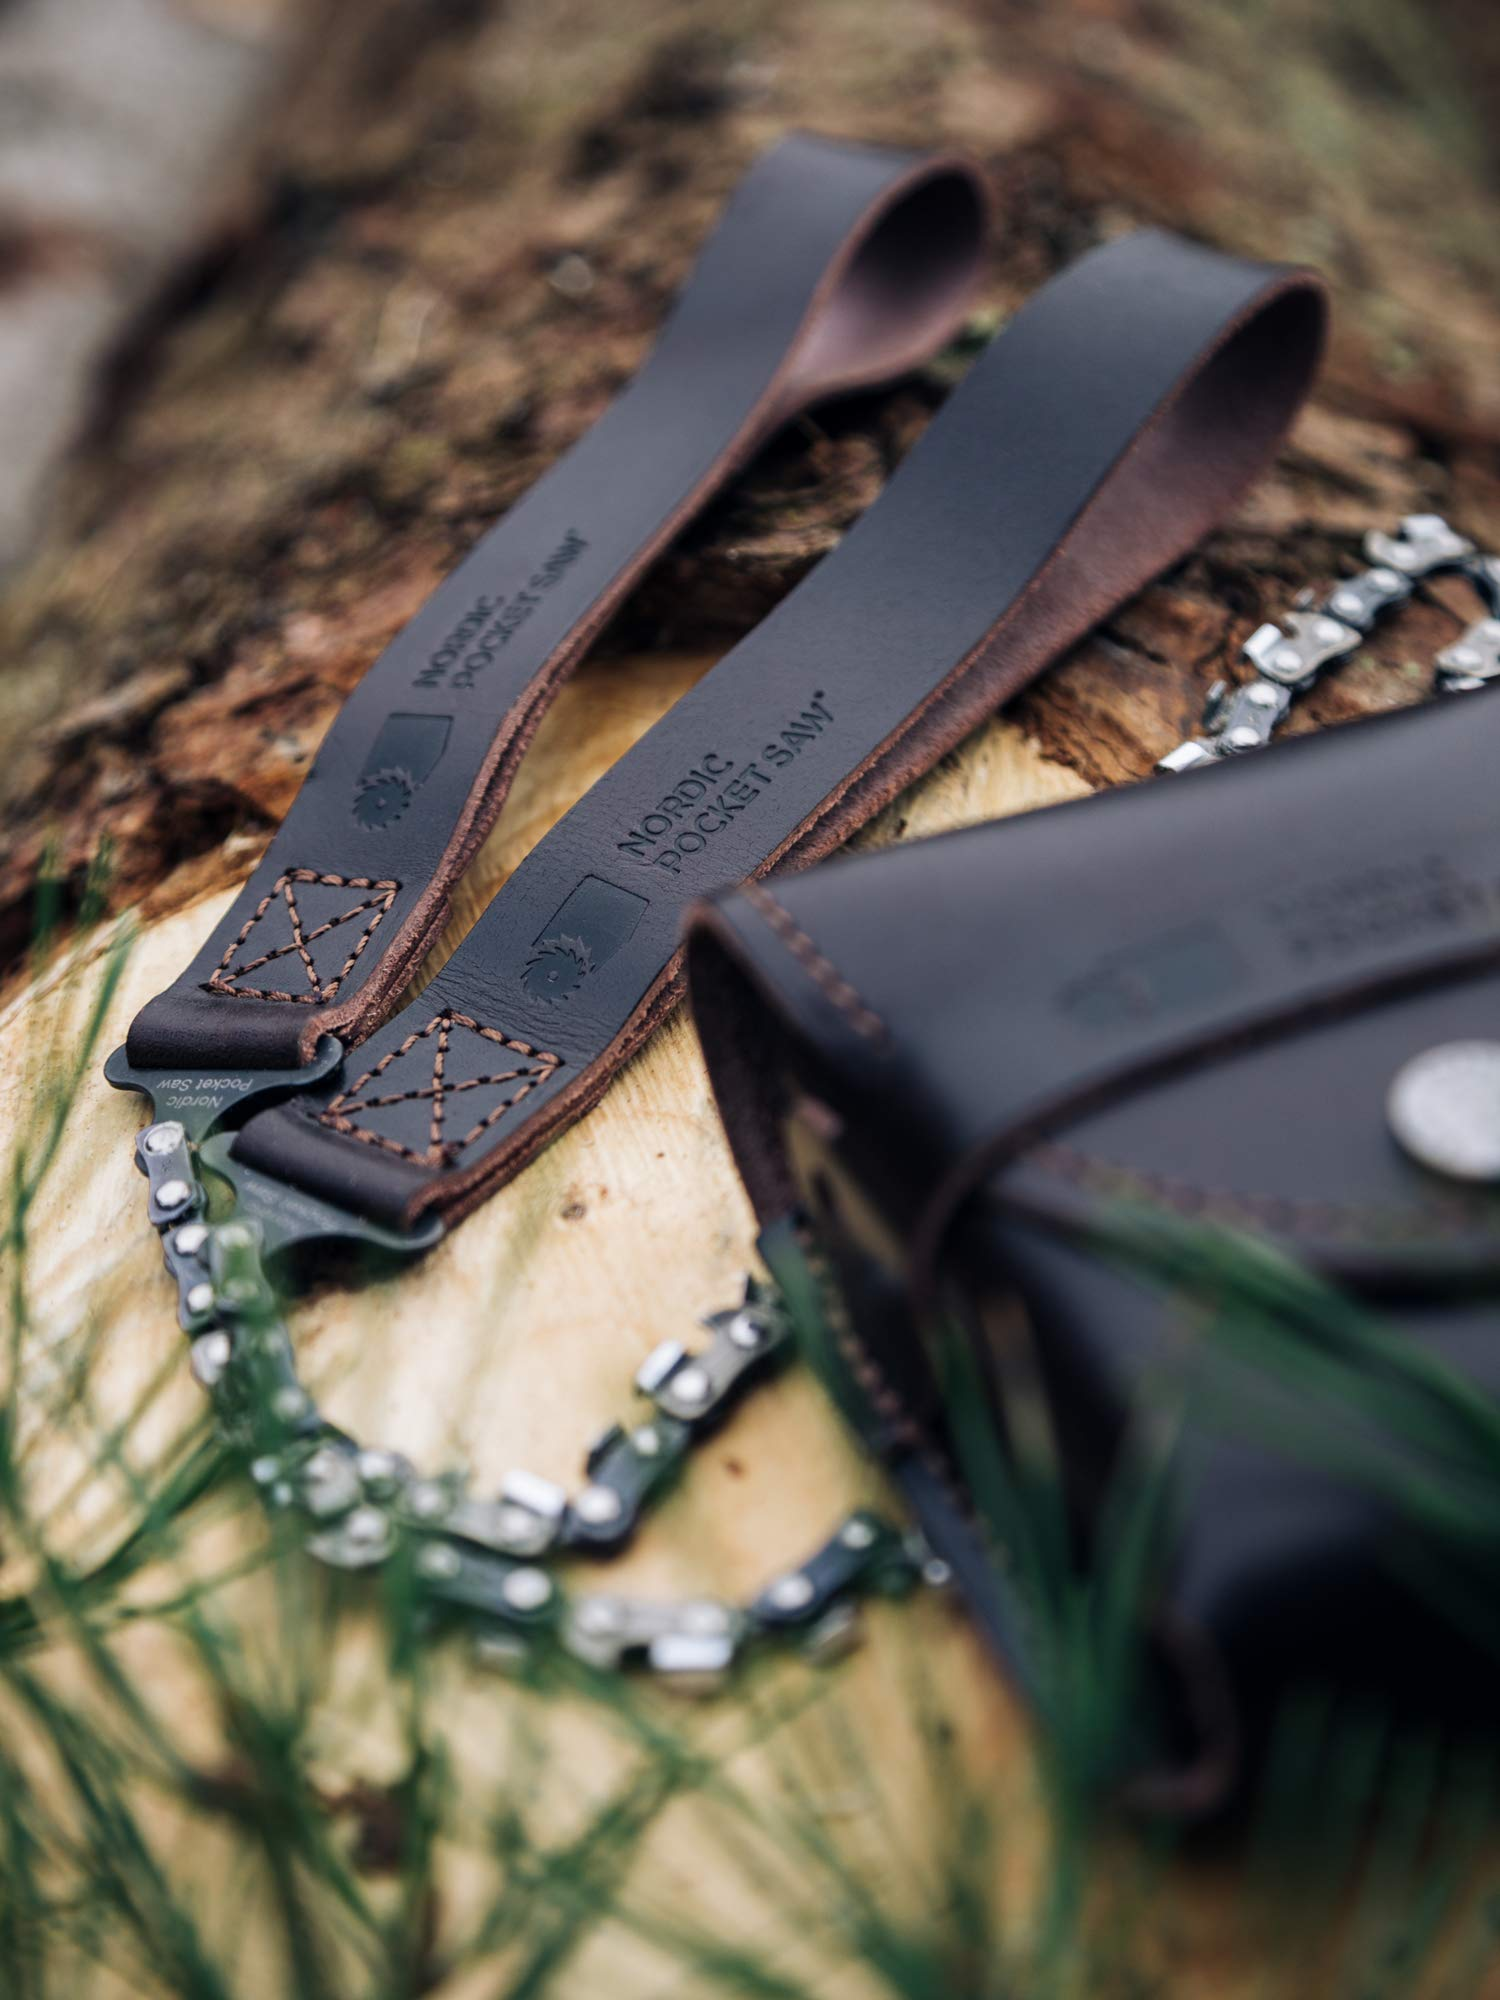 Nordic Pocket Saw - Premium - 100% Organic Swedish Leather. Compact folding camping chainsaw. Survival handsaw kit with leather pouch for hunting, hiking and outdoors by Nordic Pocket Saw (Image #9)